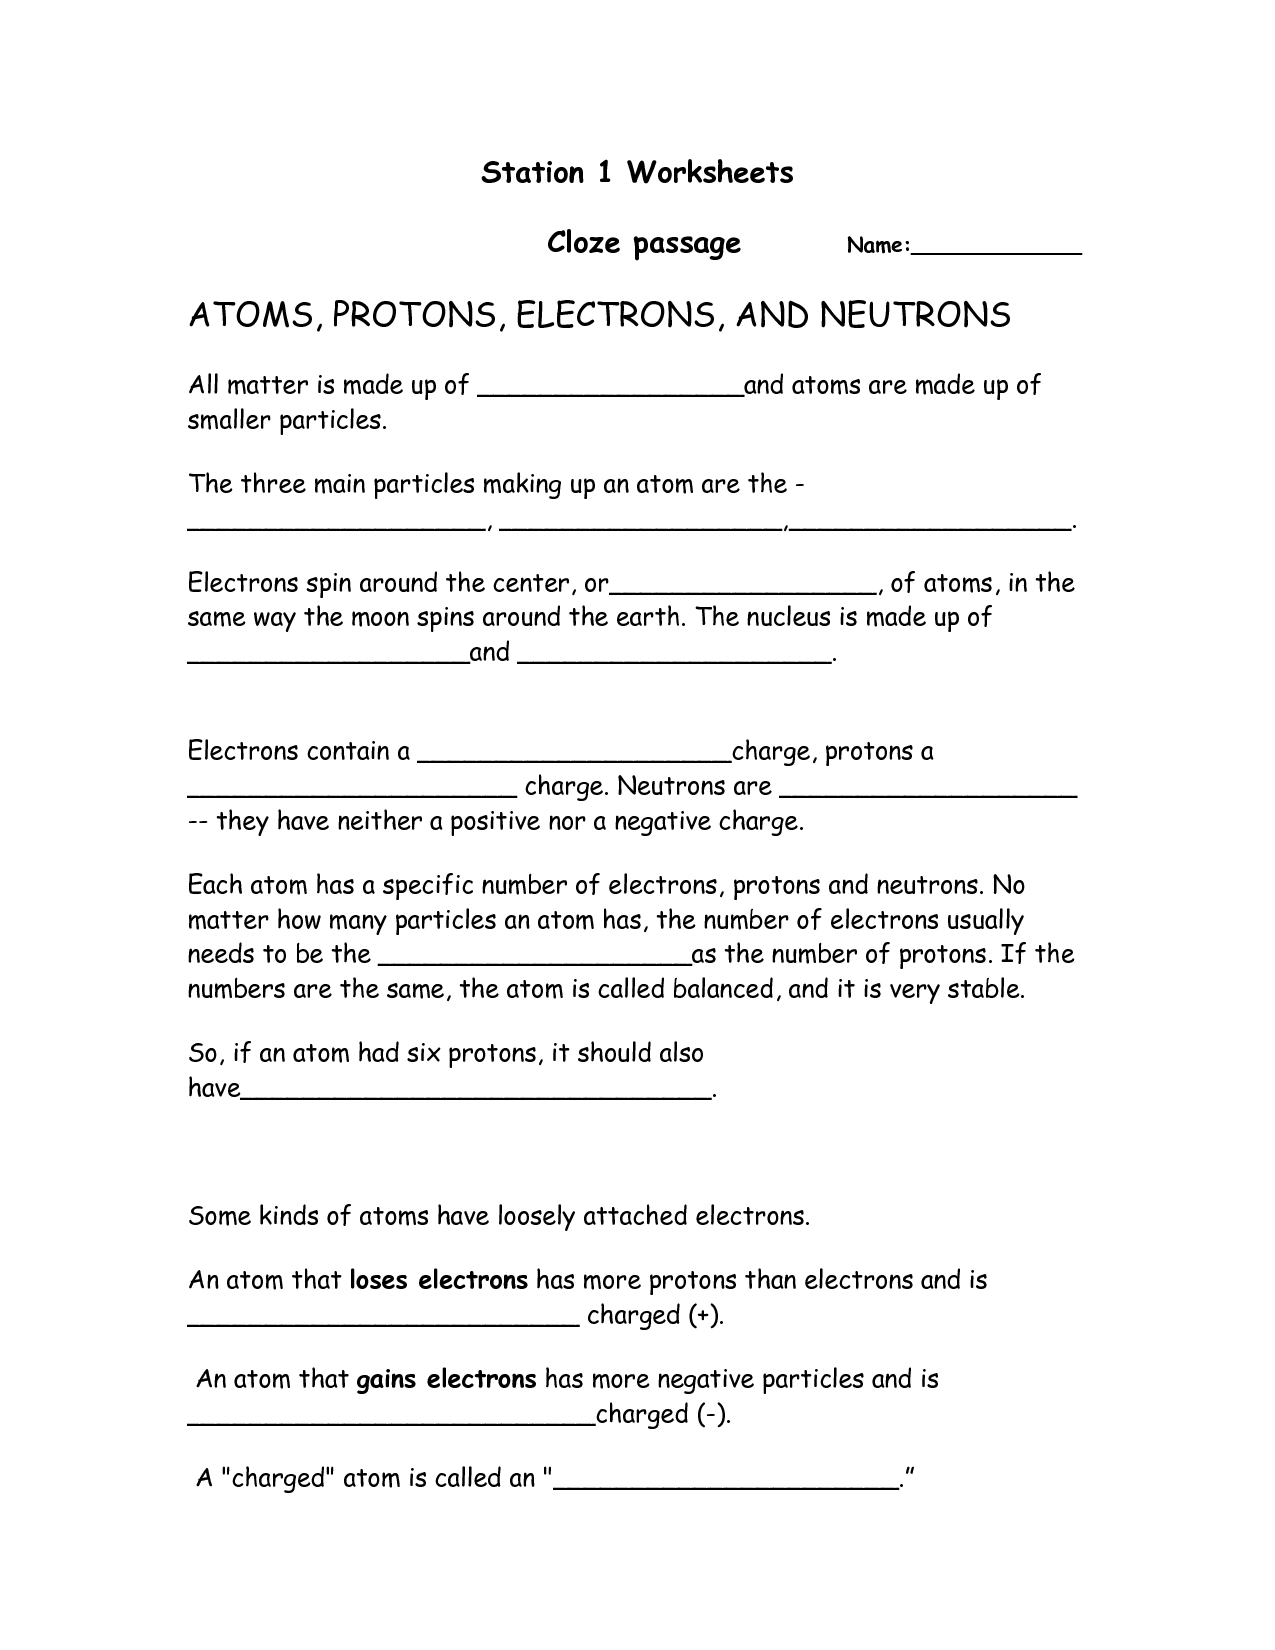 16 Best Images Of Reading Passage Worksheets